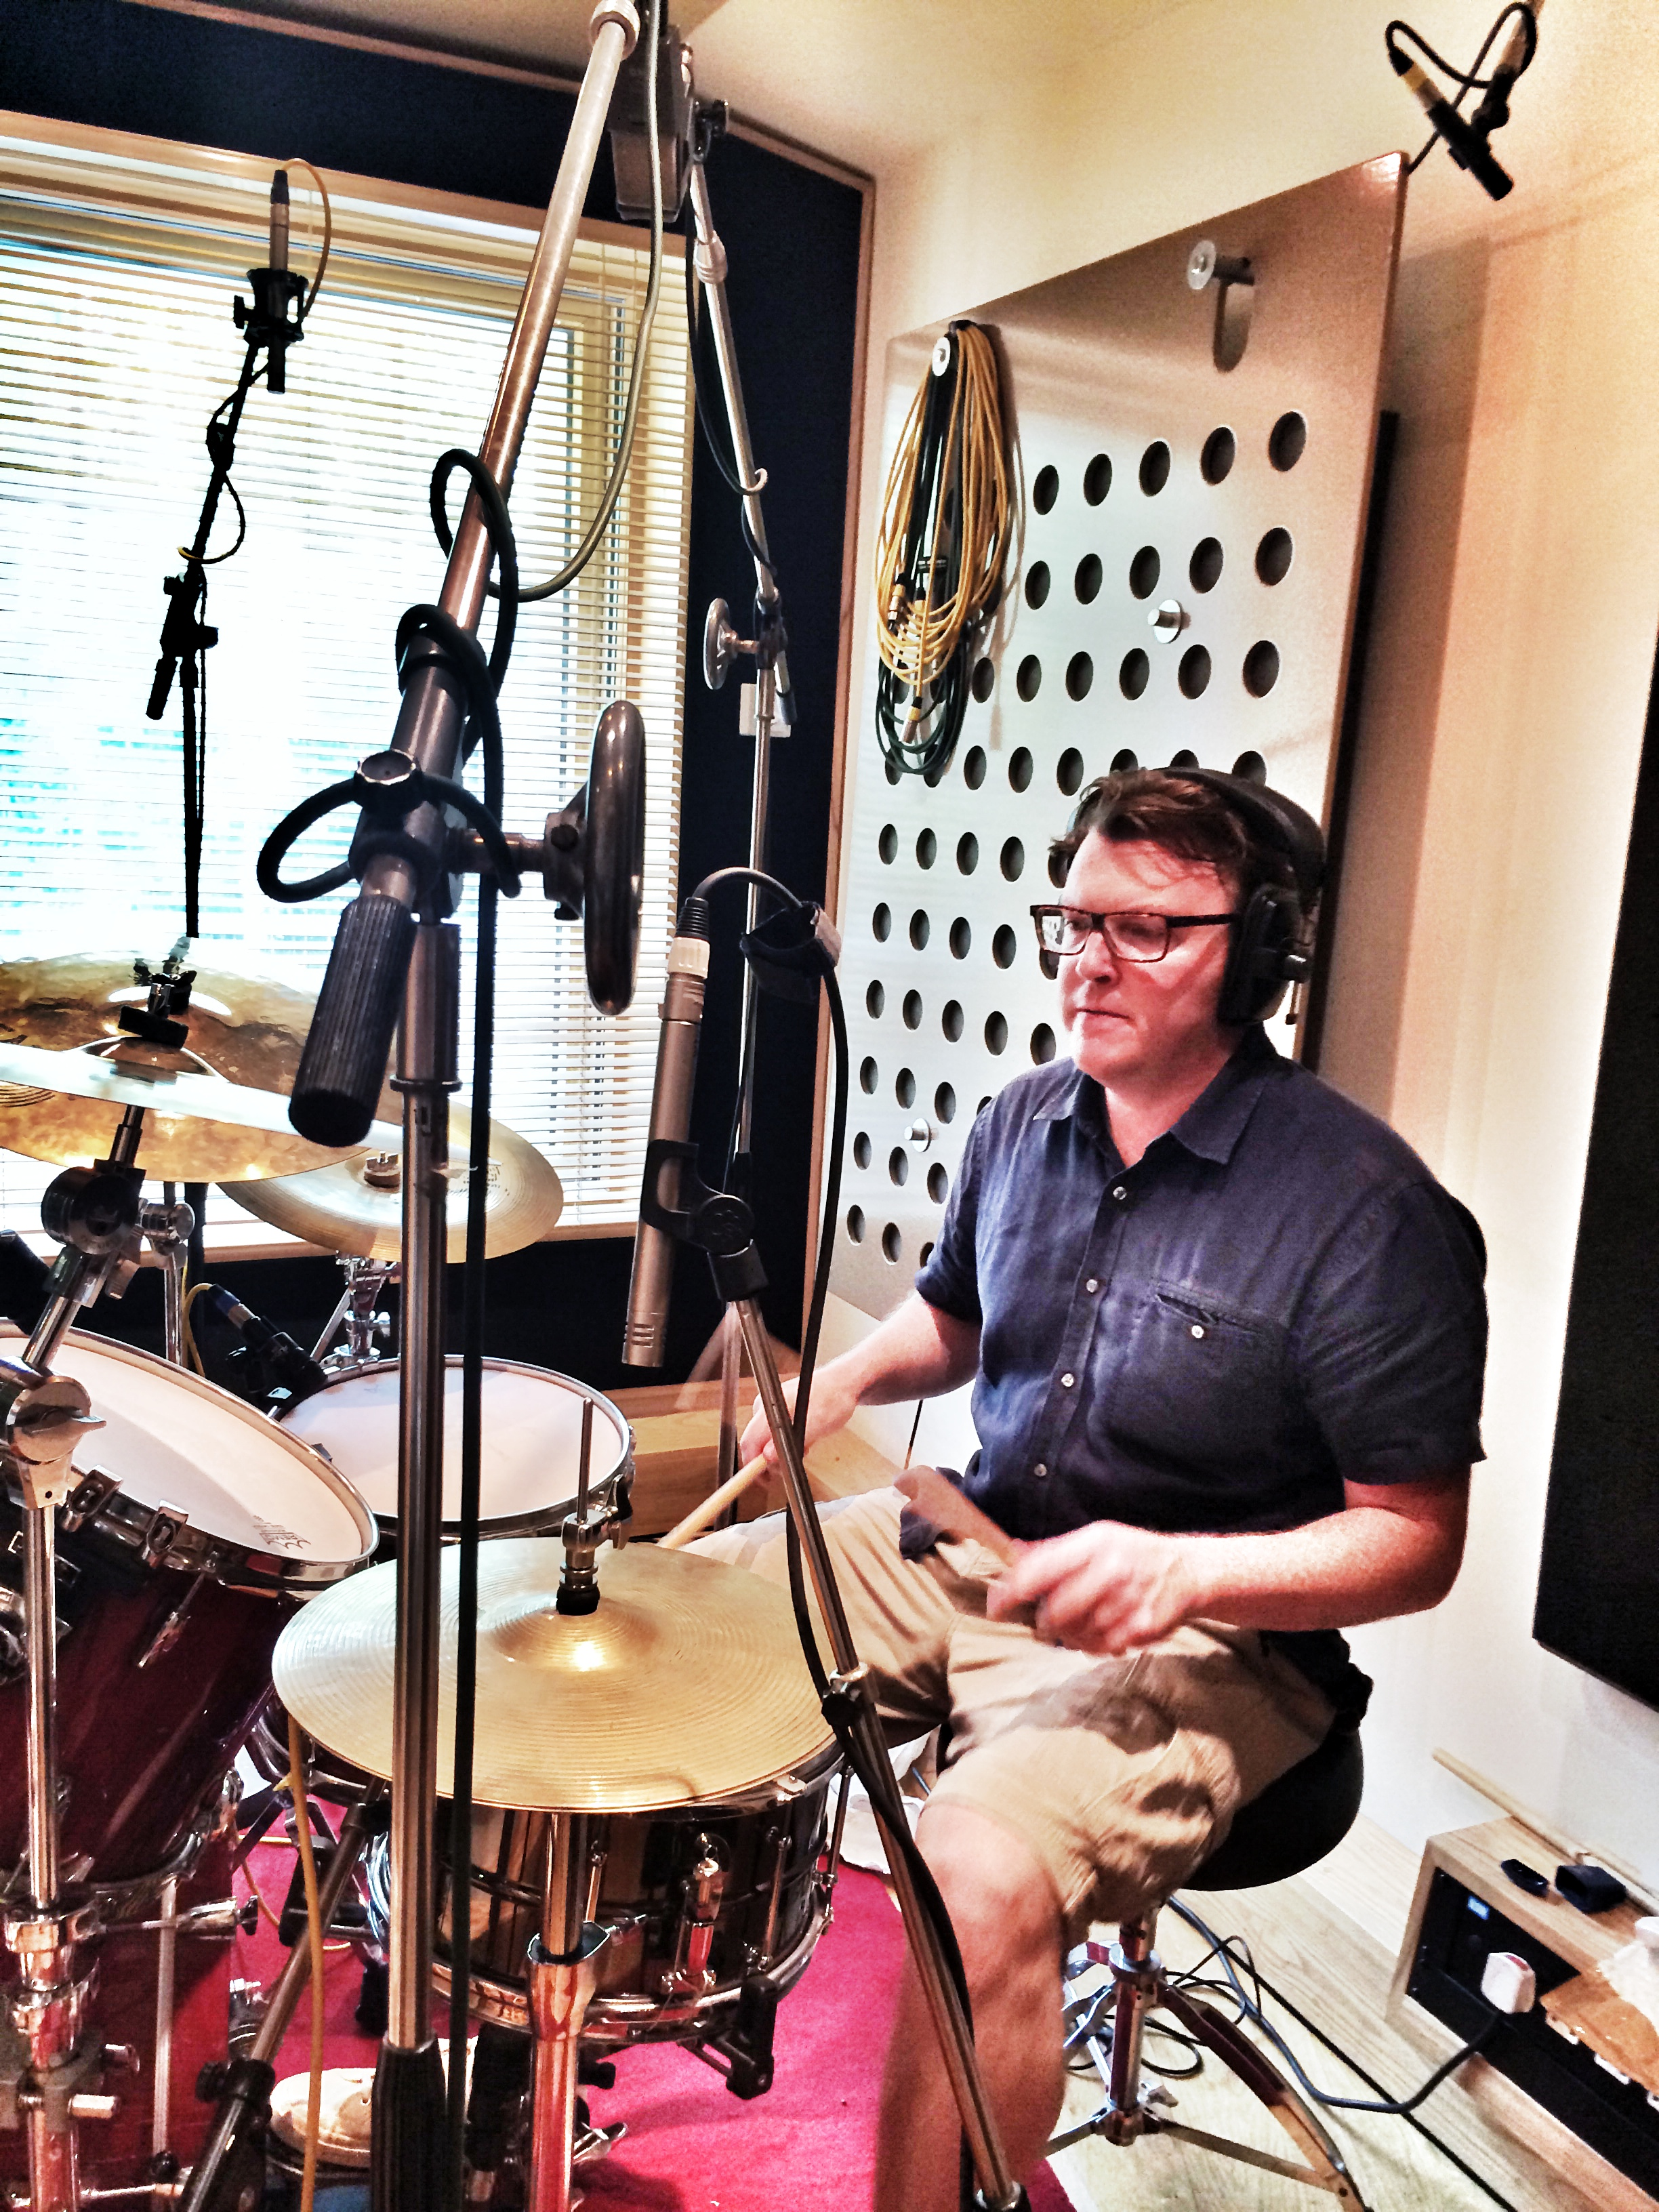 Matt Shearer - at the end of the drums session @Ten21 Studios